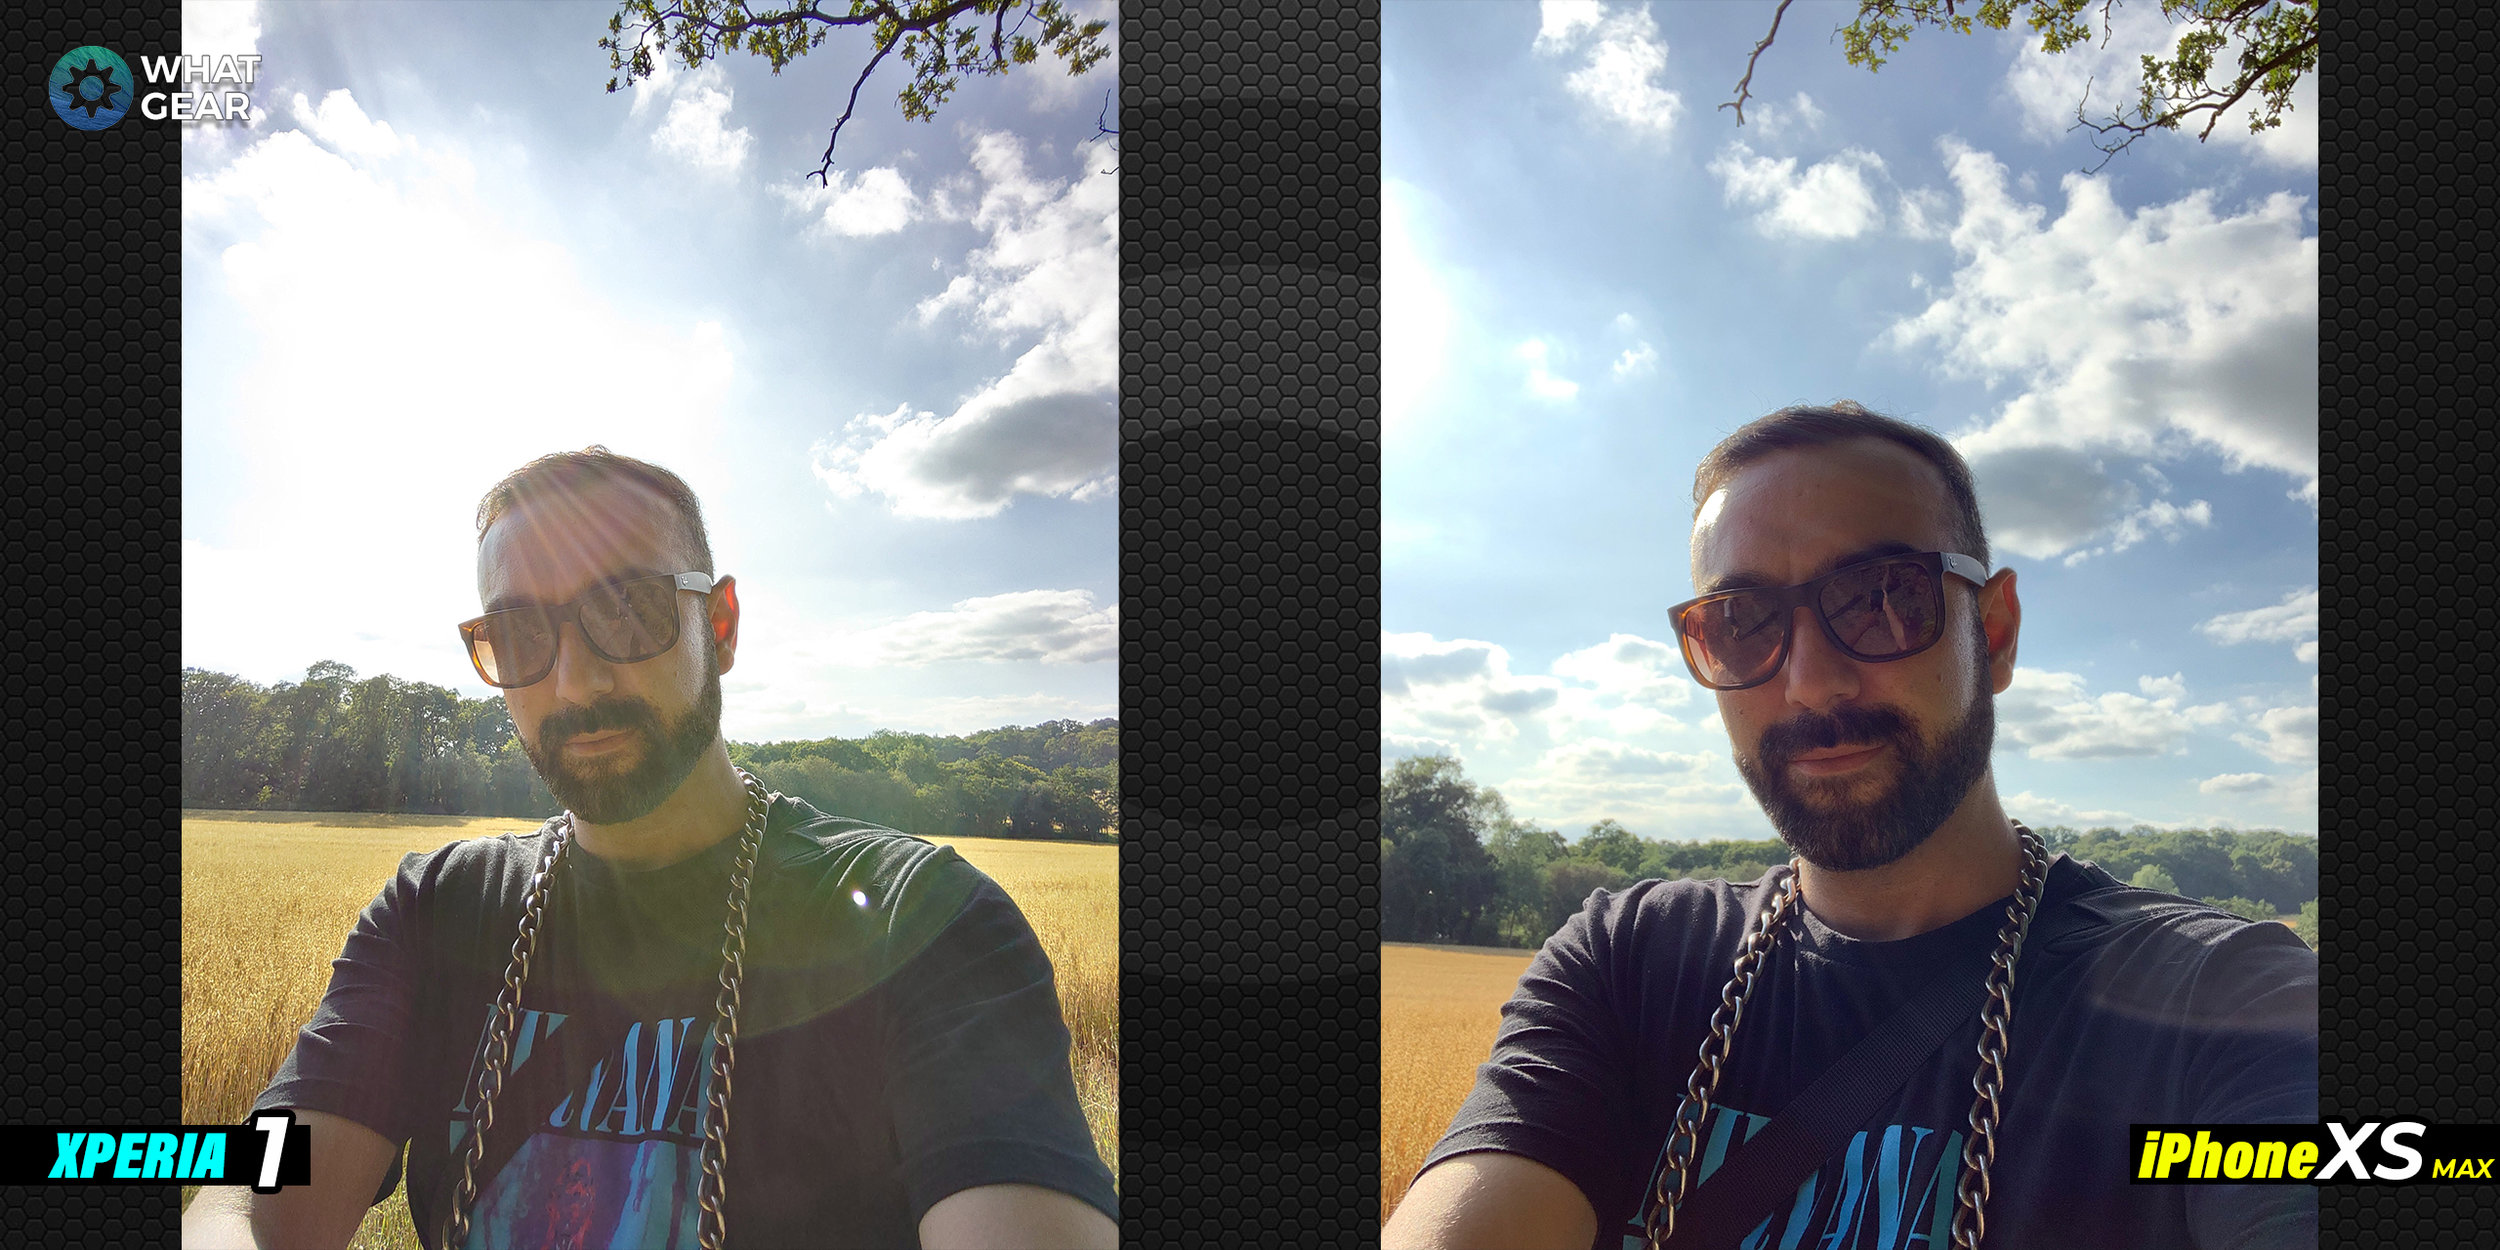 xperia 1 vs iphone xs camera 4.jpg